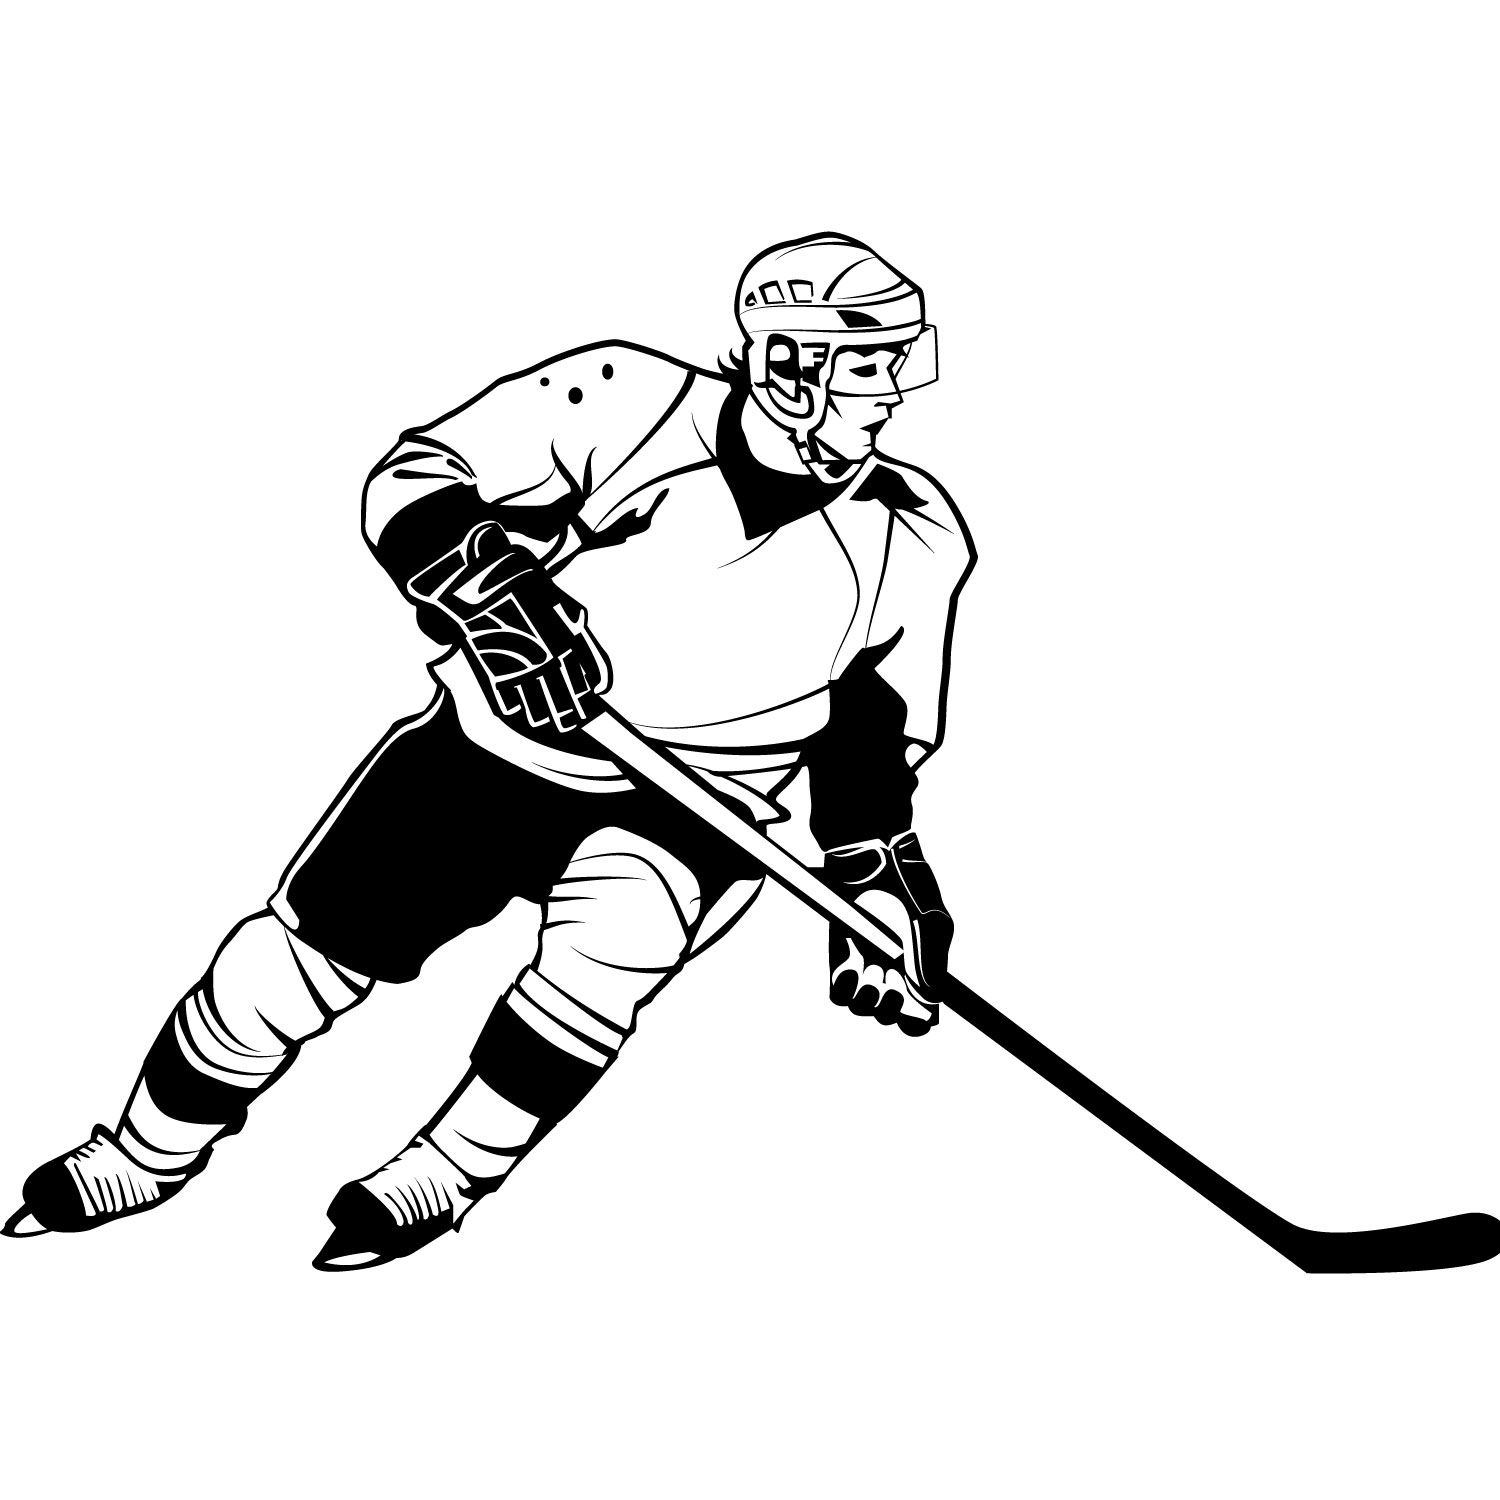 History of in johnstown. Hockey clipart hockey player